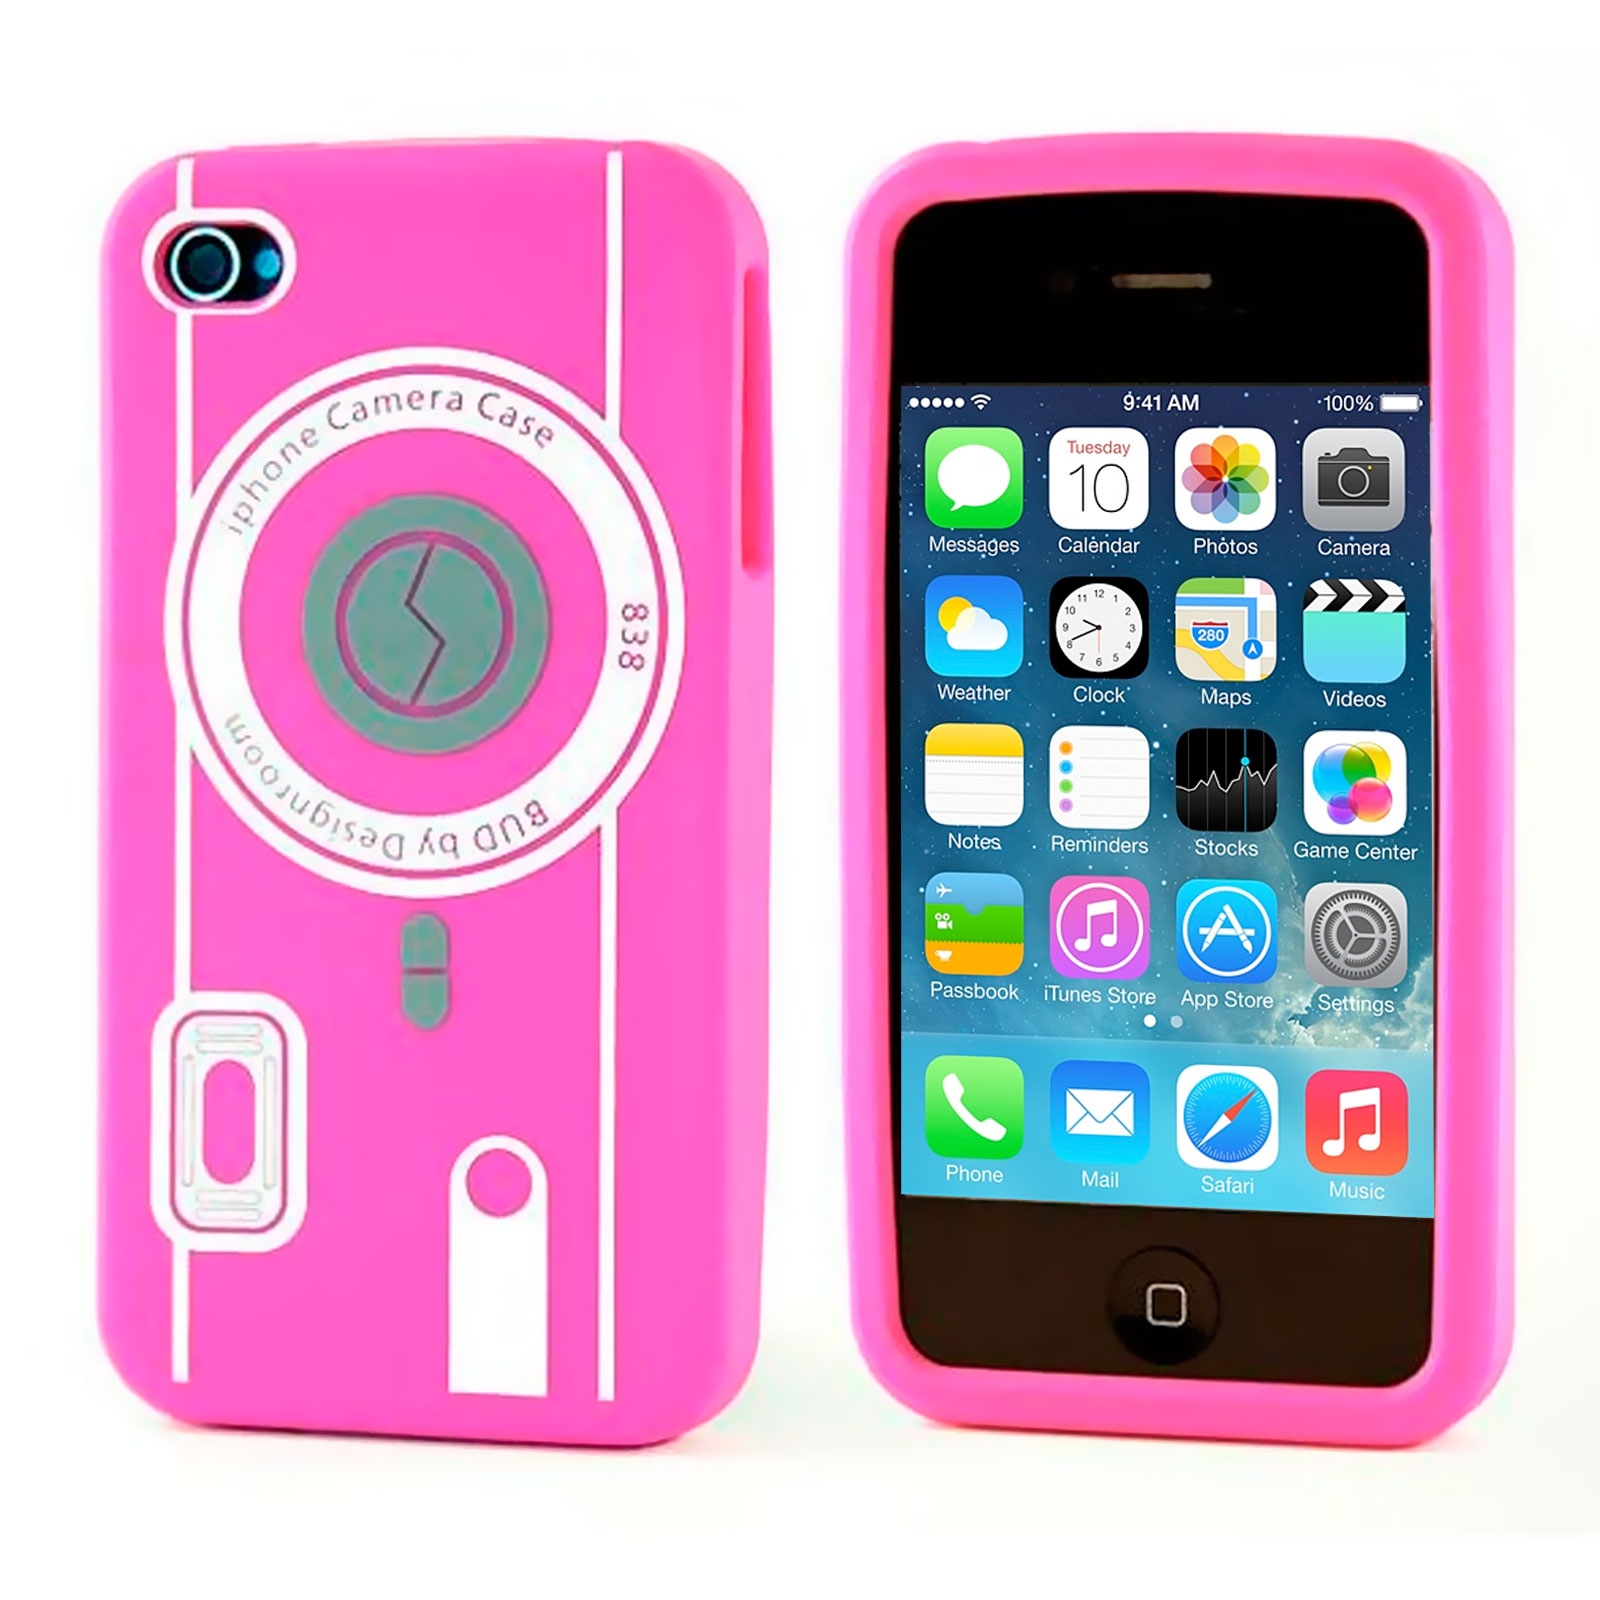 coque housse silicone camera rose pour iphone 4s 4. Black Bedroom Furniture Sets. Home Design Ideas